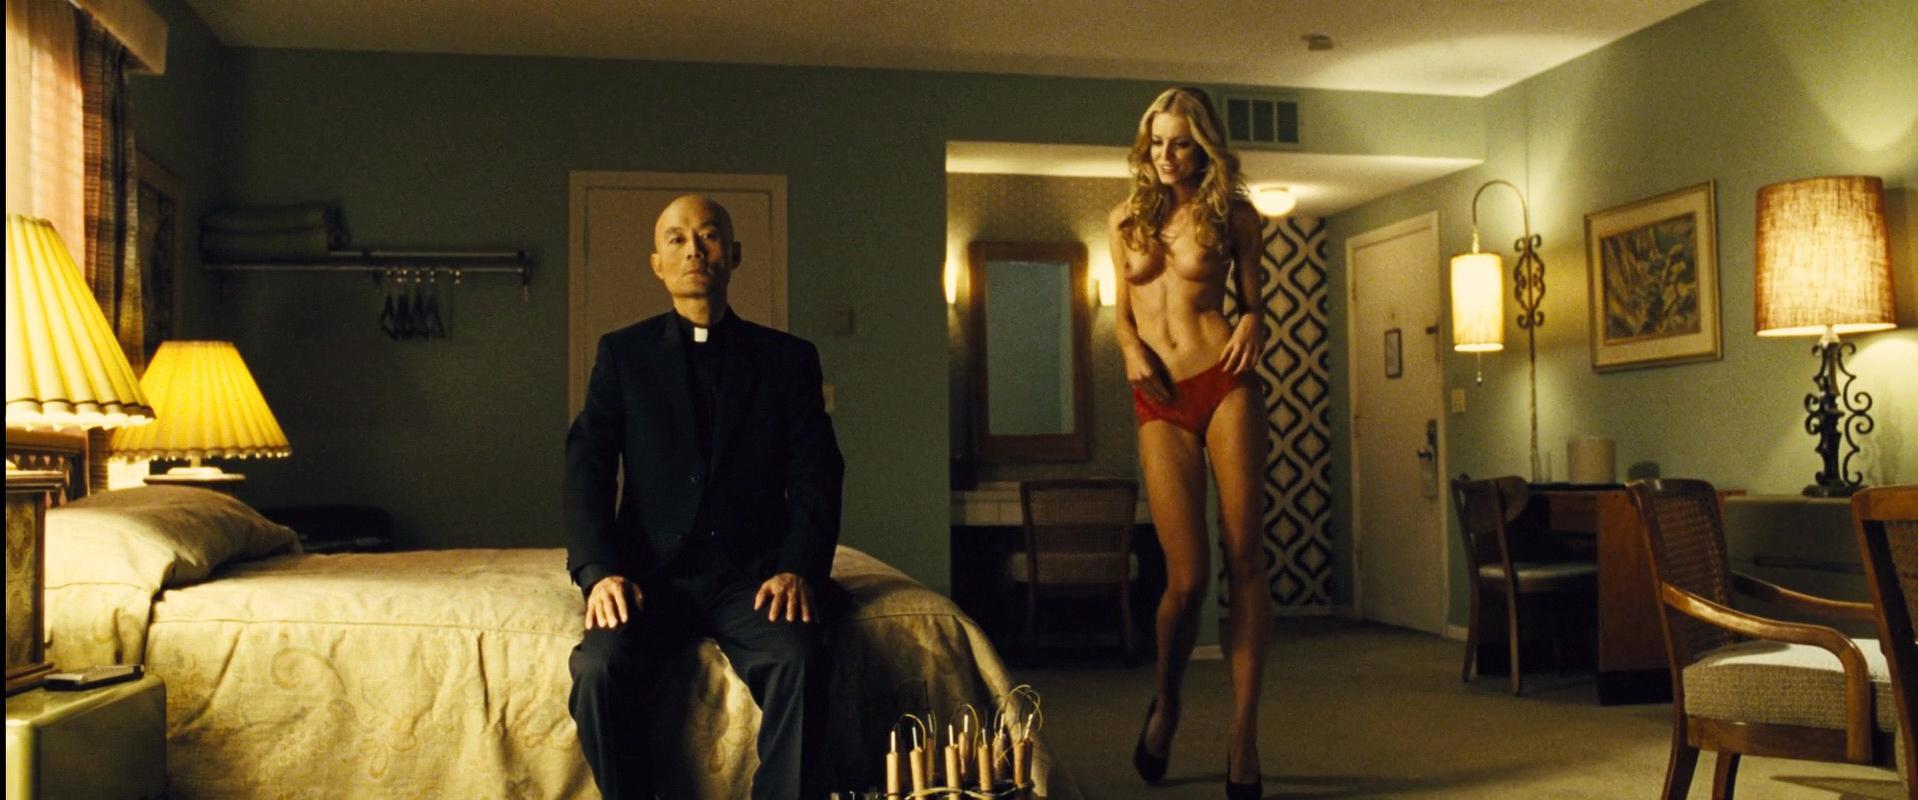 Christine Marzano nude - Seven Psychopaths (2012)